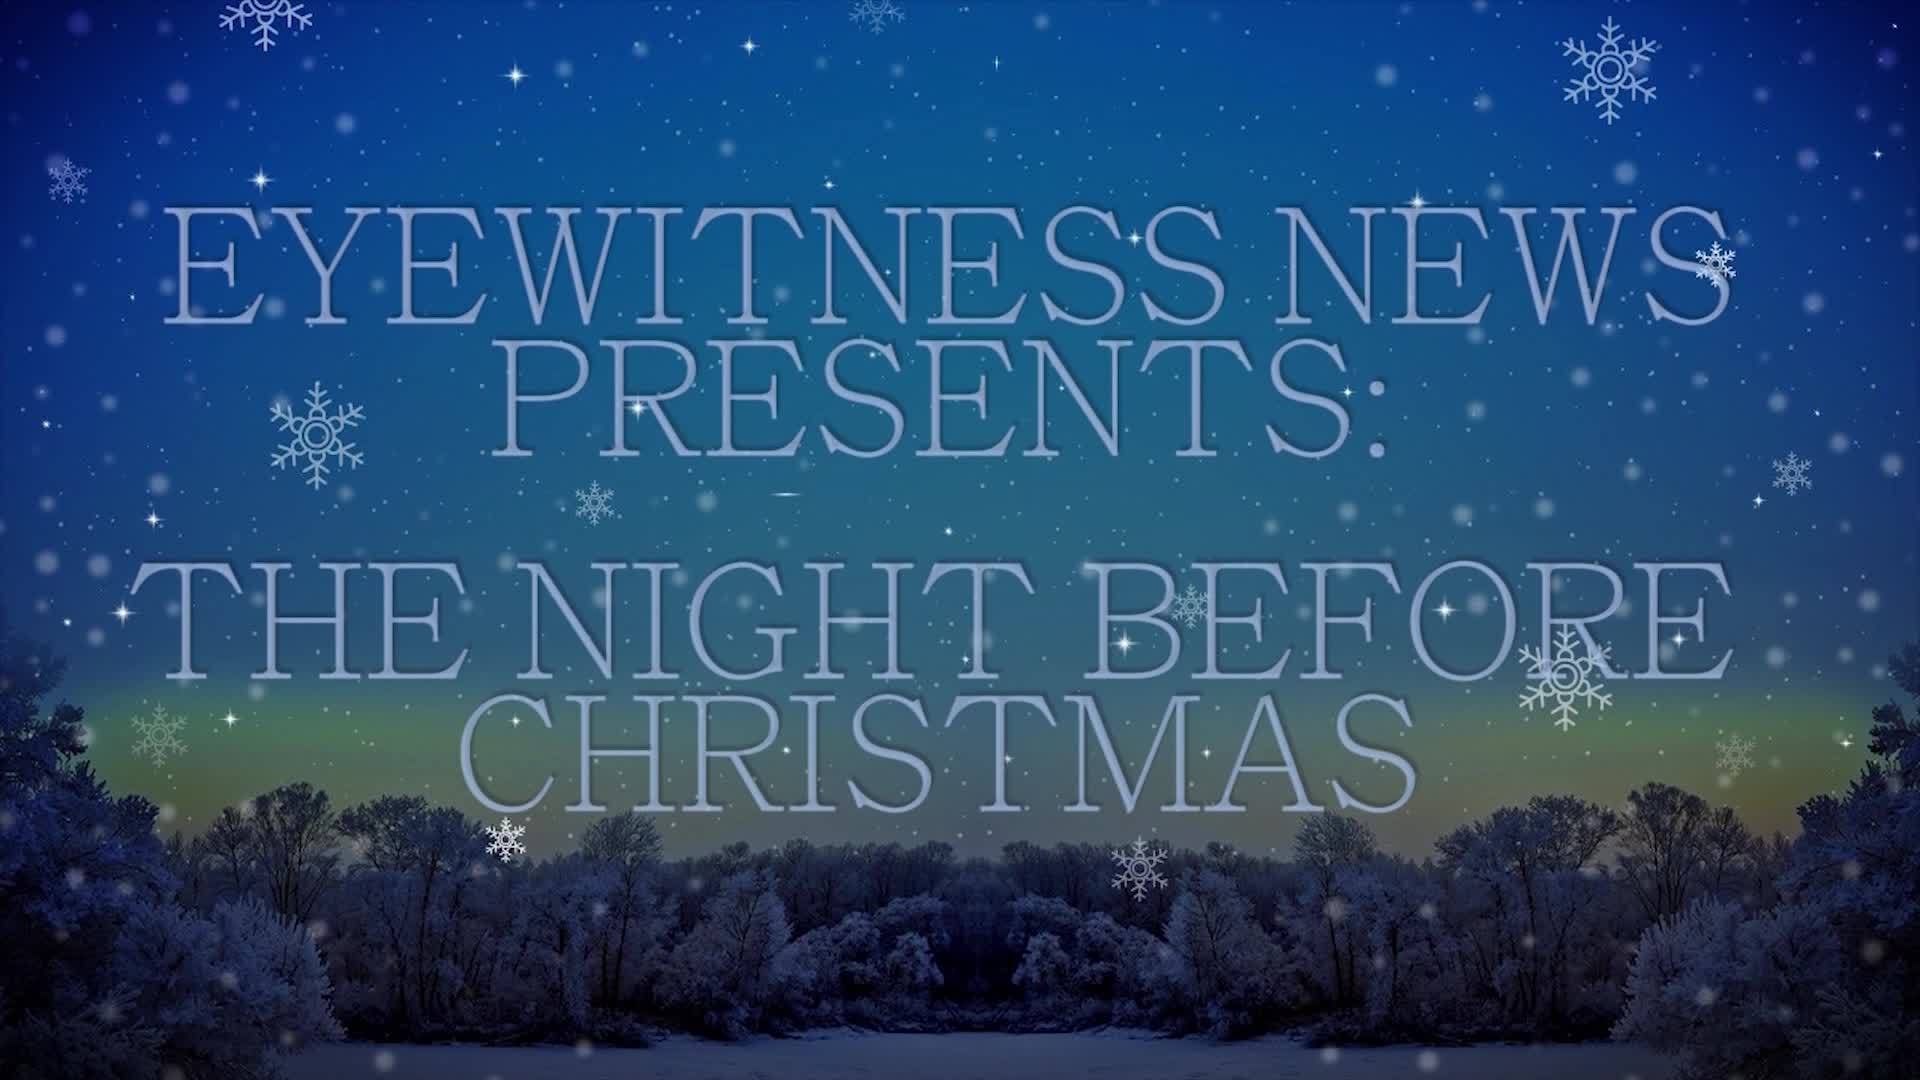 Twas_the_Night_Before_Christmas_2016_3_20181220014755